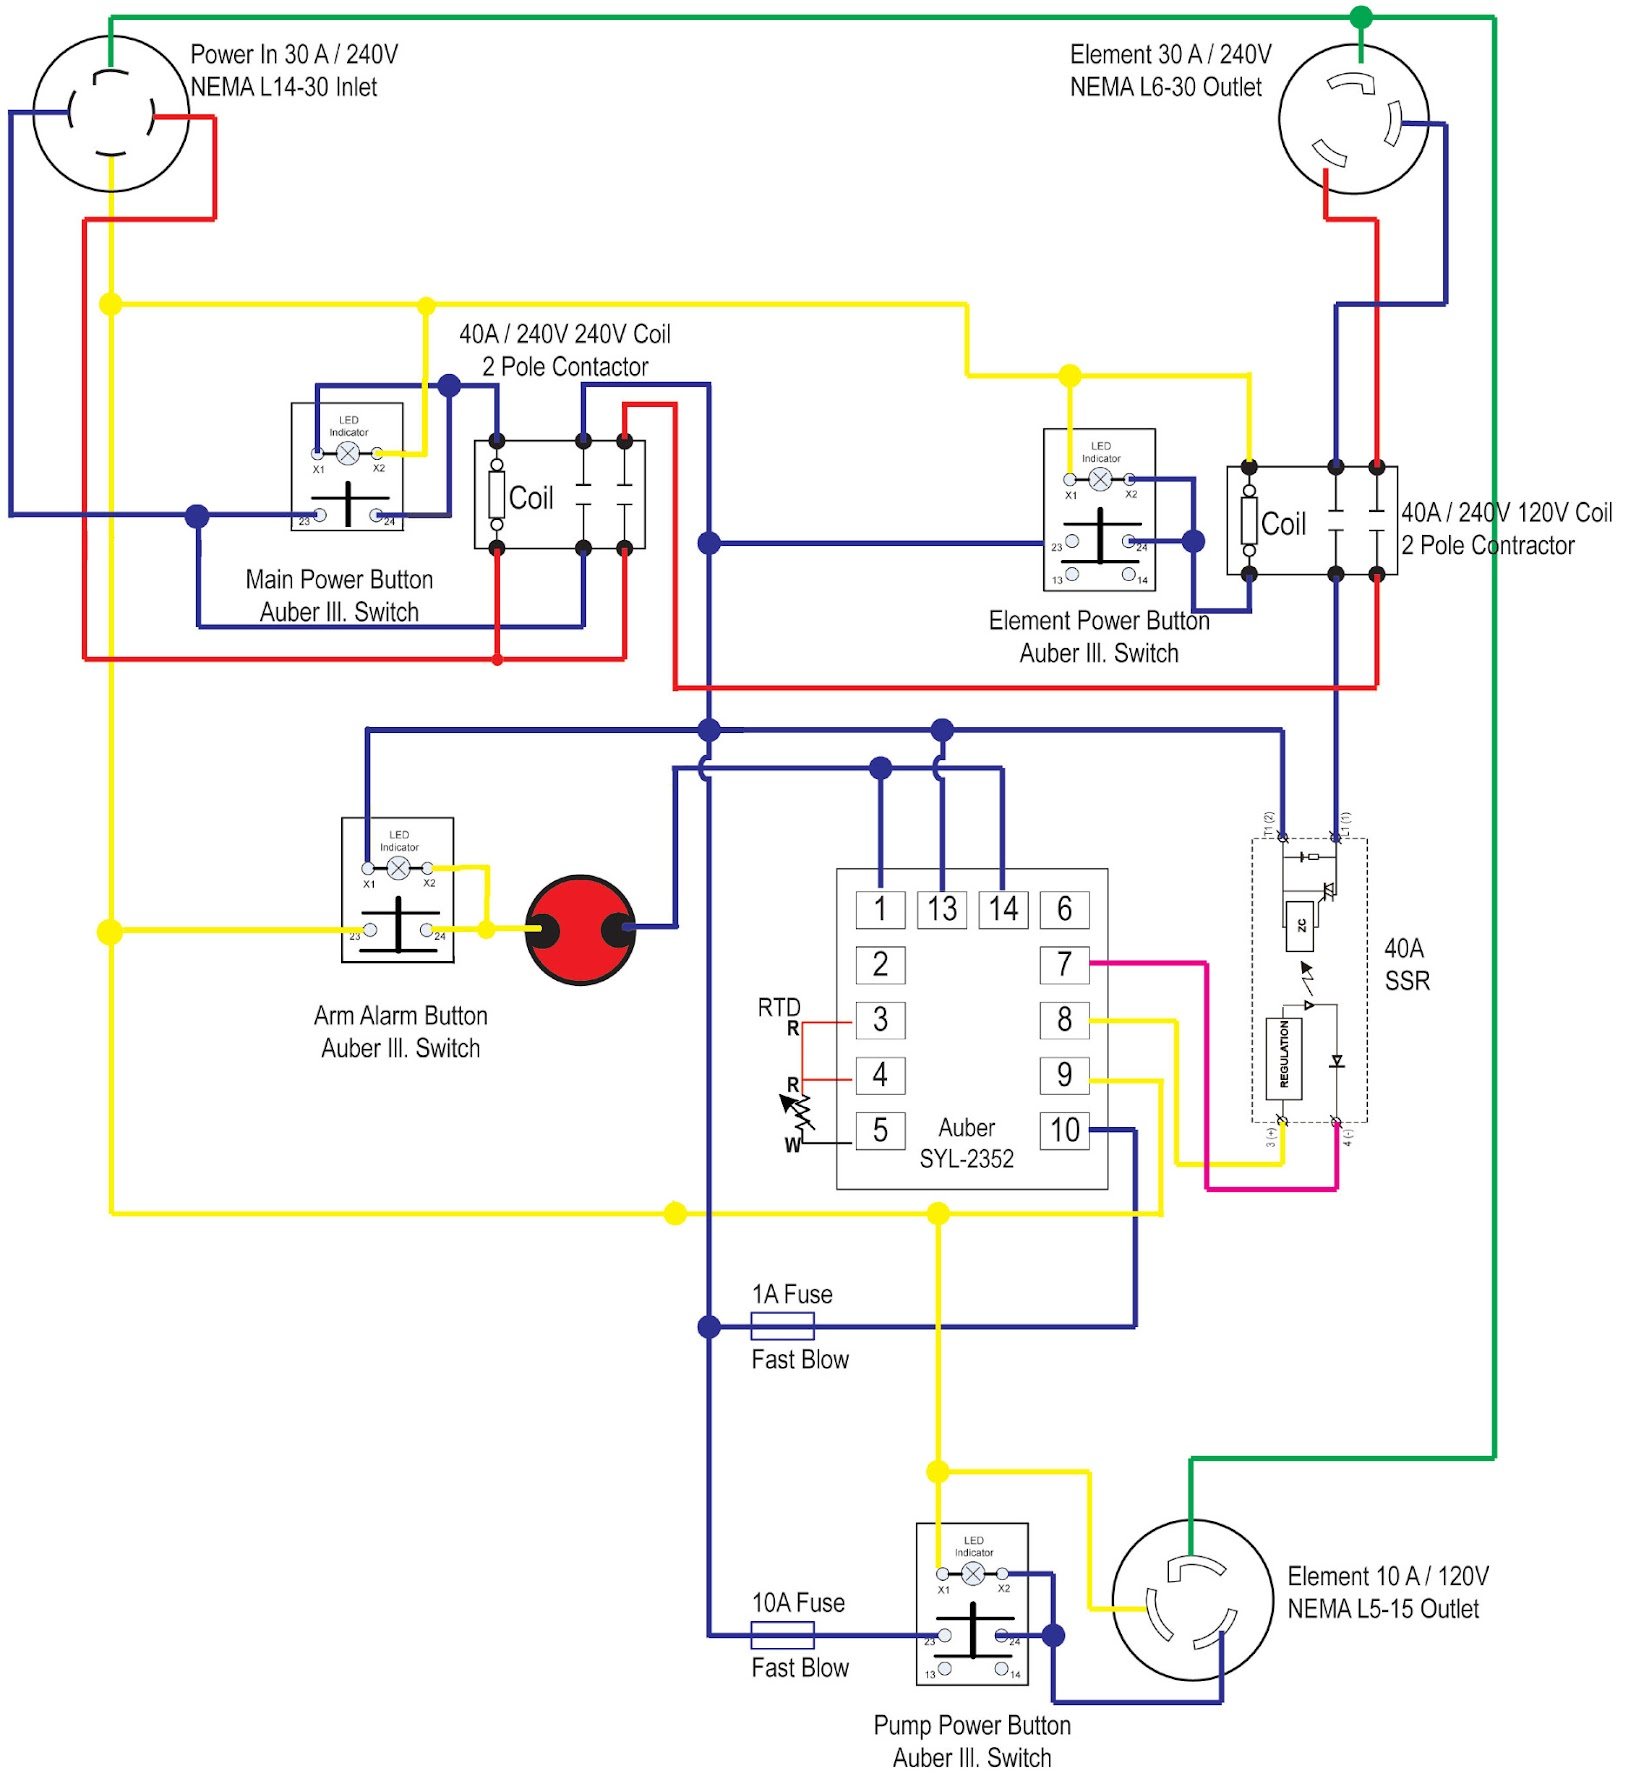 wiring diagram lukez auberins pushbutton switches home brew forums syl-2352 wiring diagram at bayanpartner.co